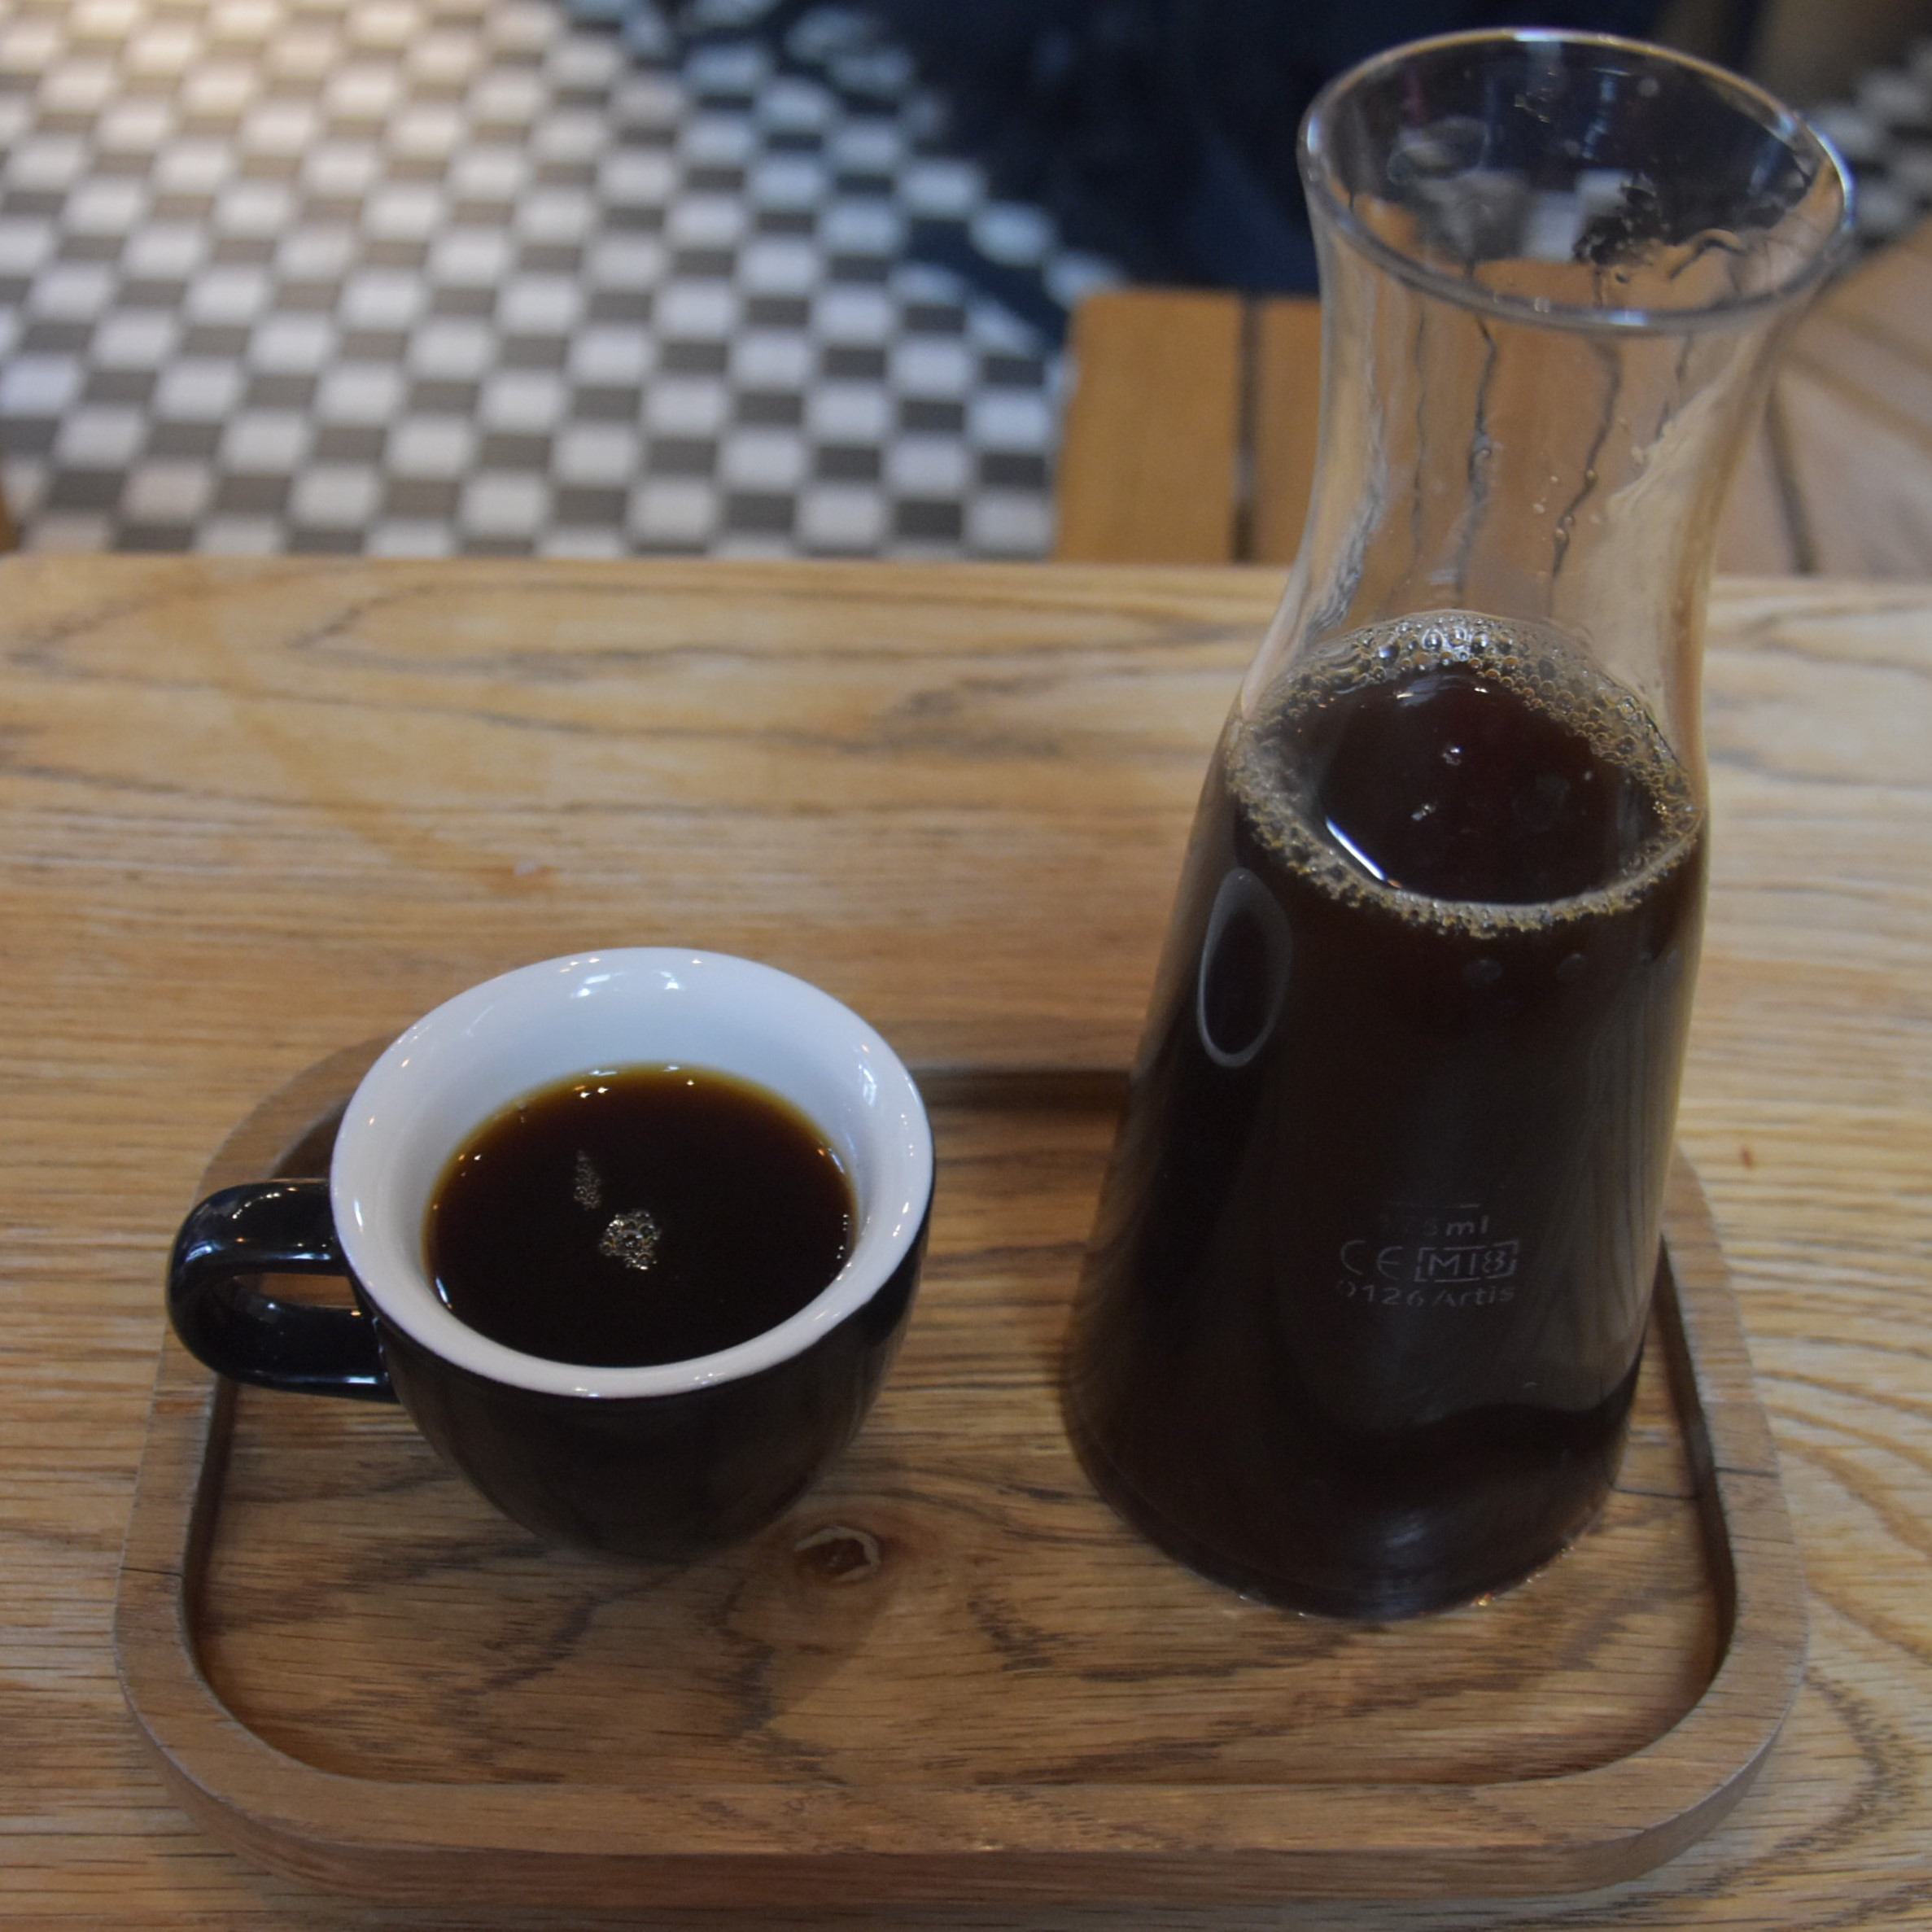 A batch-brew of a beautiful Ethiopian Ardi naturally-processed coffee, served at The Watch House on Bermondsey Street, London.